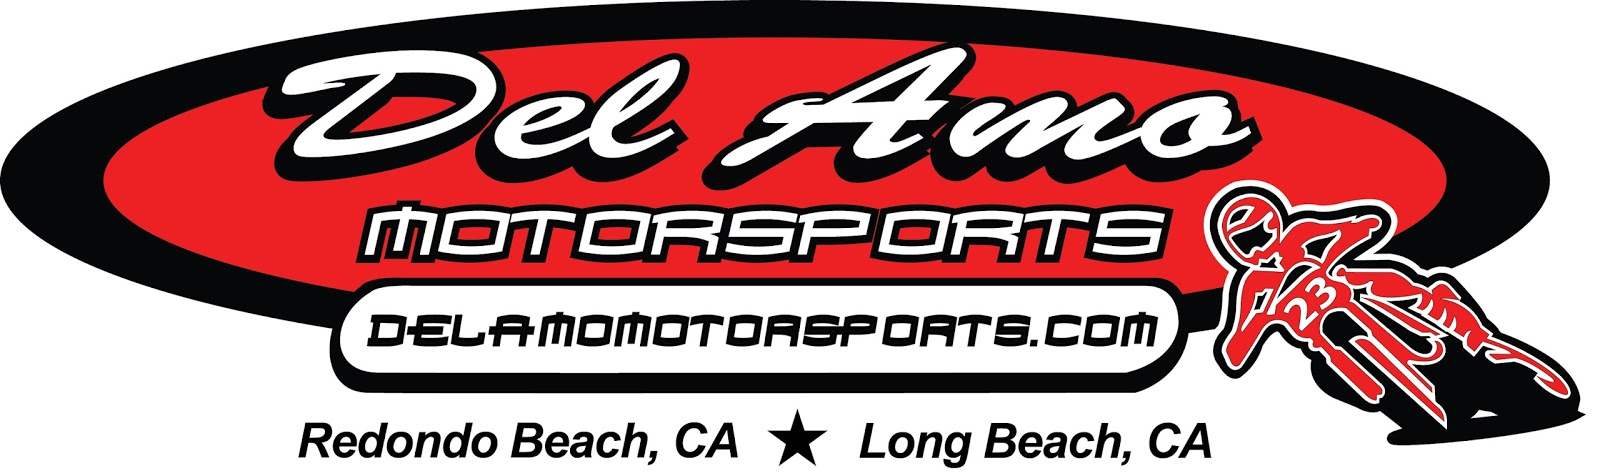 welcome to del amo motorsports del amo motorsports blog